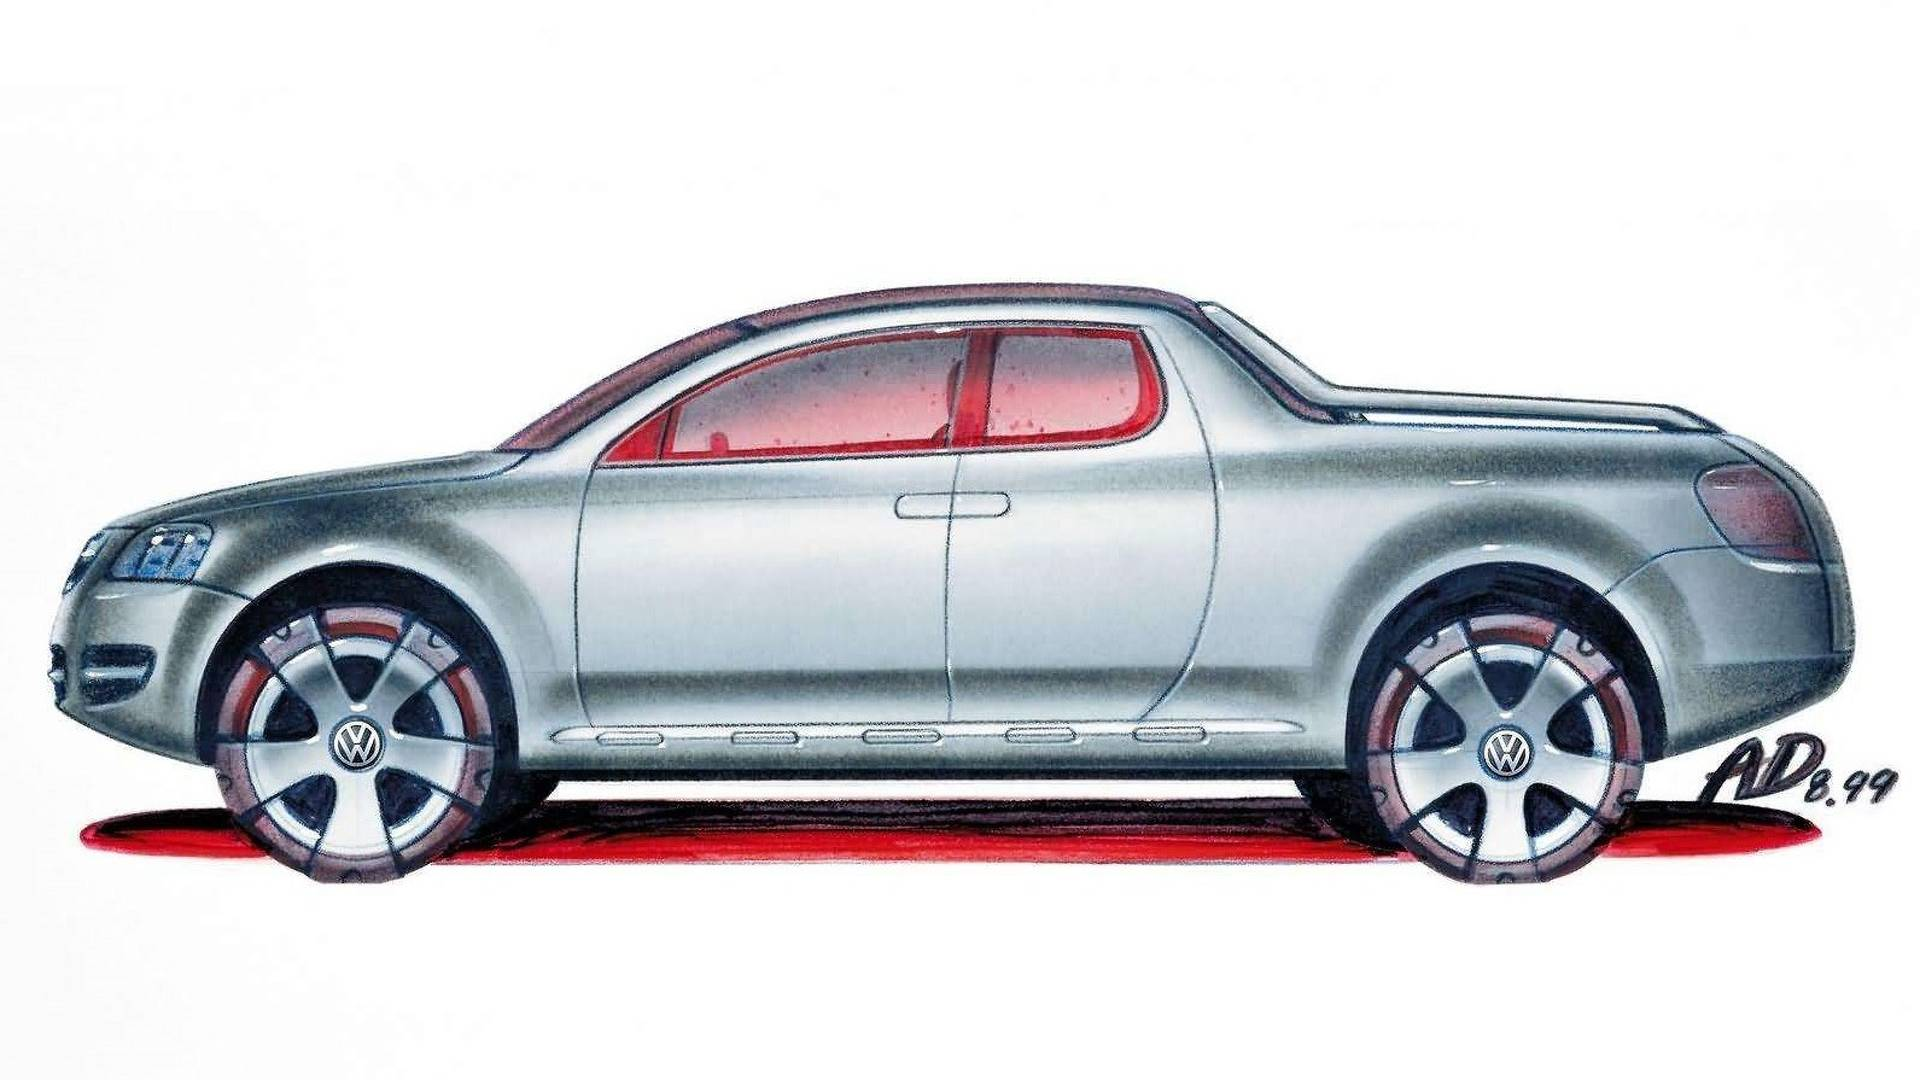 2000-vw-advanced-activity-concept (22)